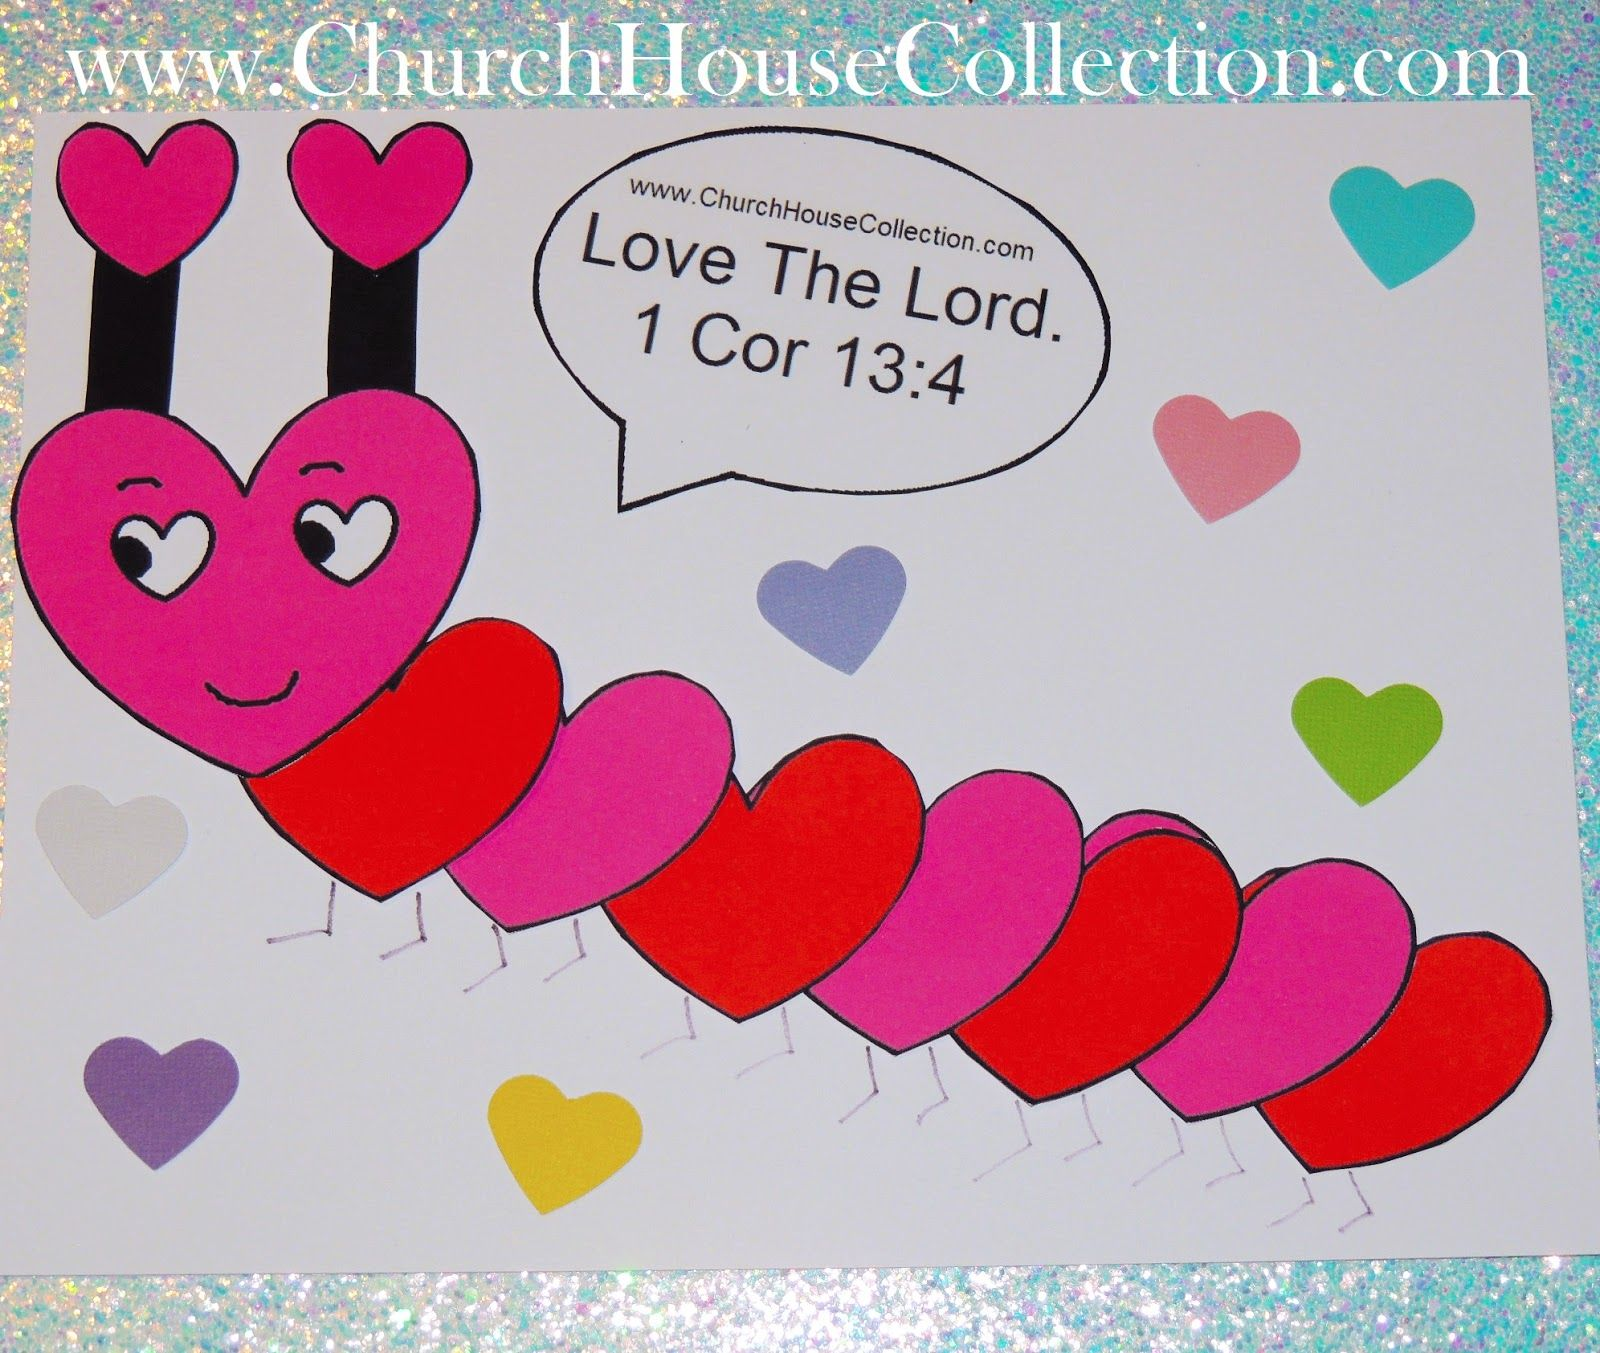 Heart Caterpillar Valentine S Day Craft For Sunday School Kids Love The Lord 1 Cor 13 4 Free